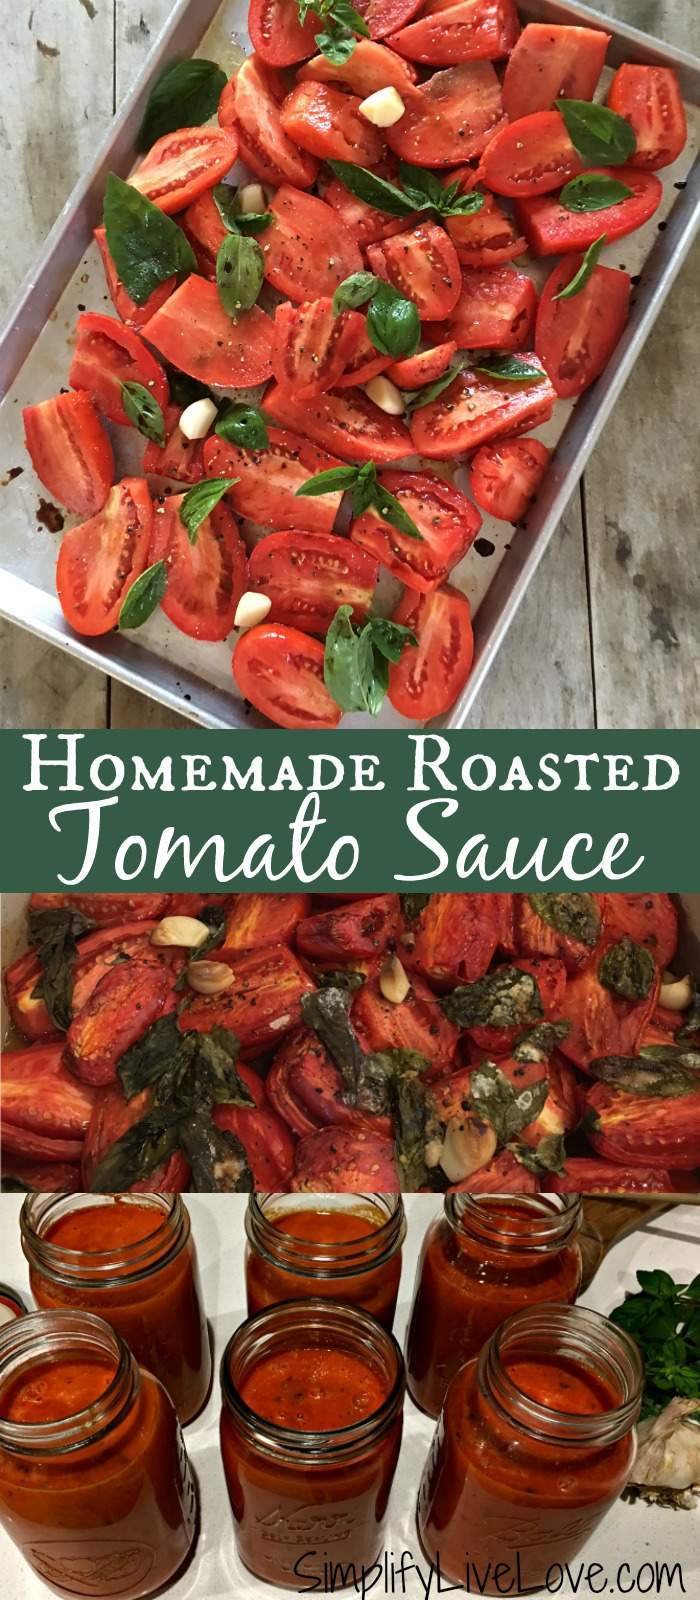 This easy homemade roasted tomato sauce is a perfect recipe. It's a great way to use up extra tomatoes you may have and is delicious on pasta and in soups!